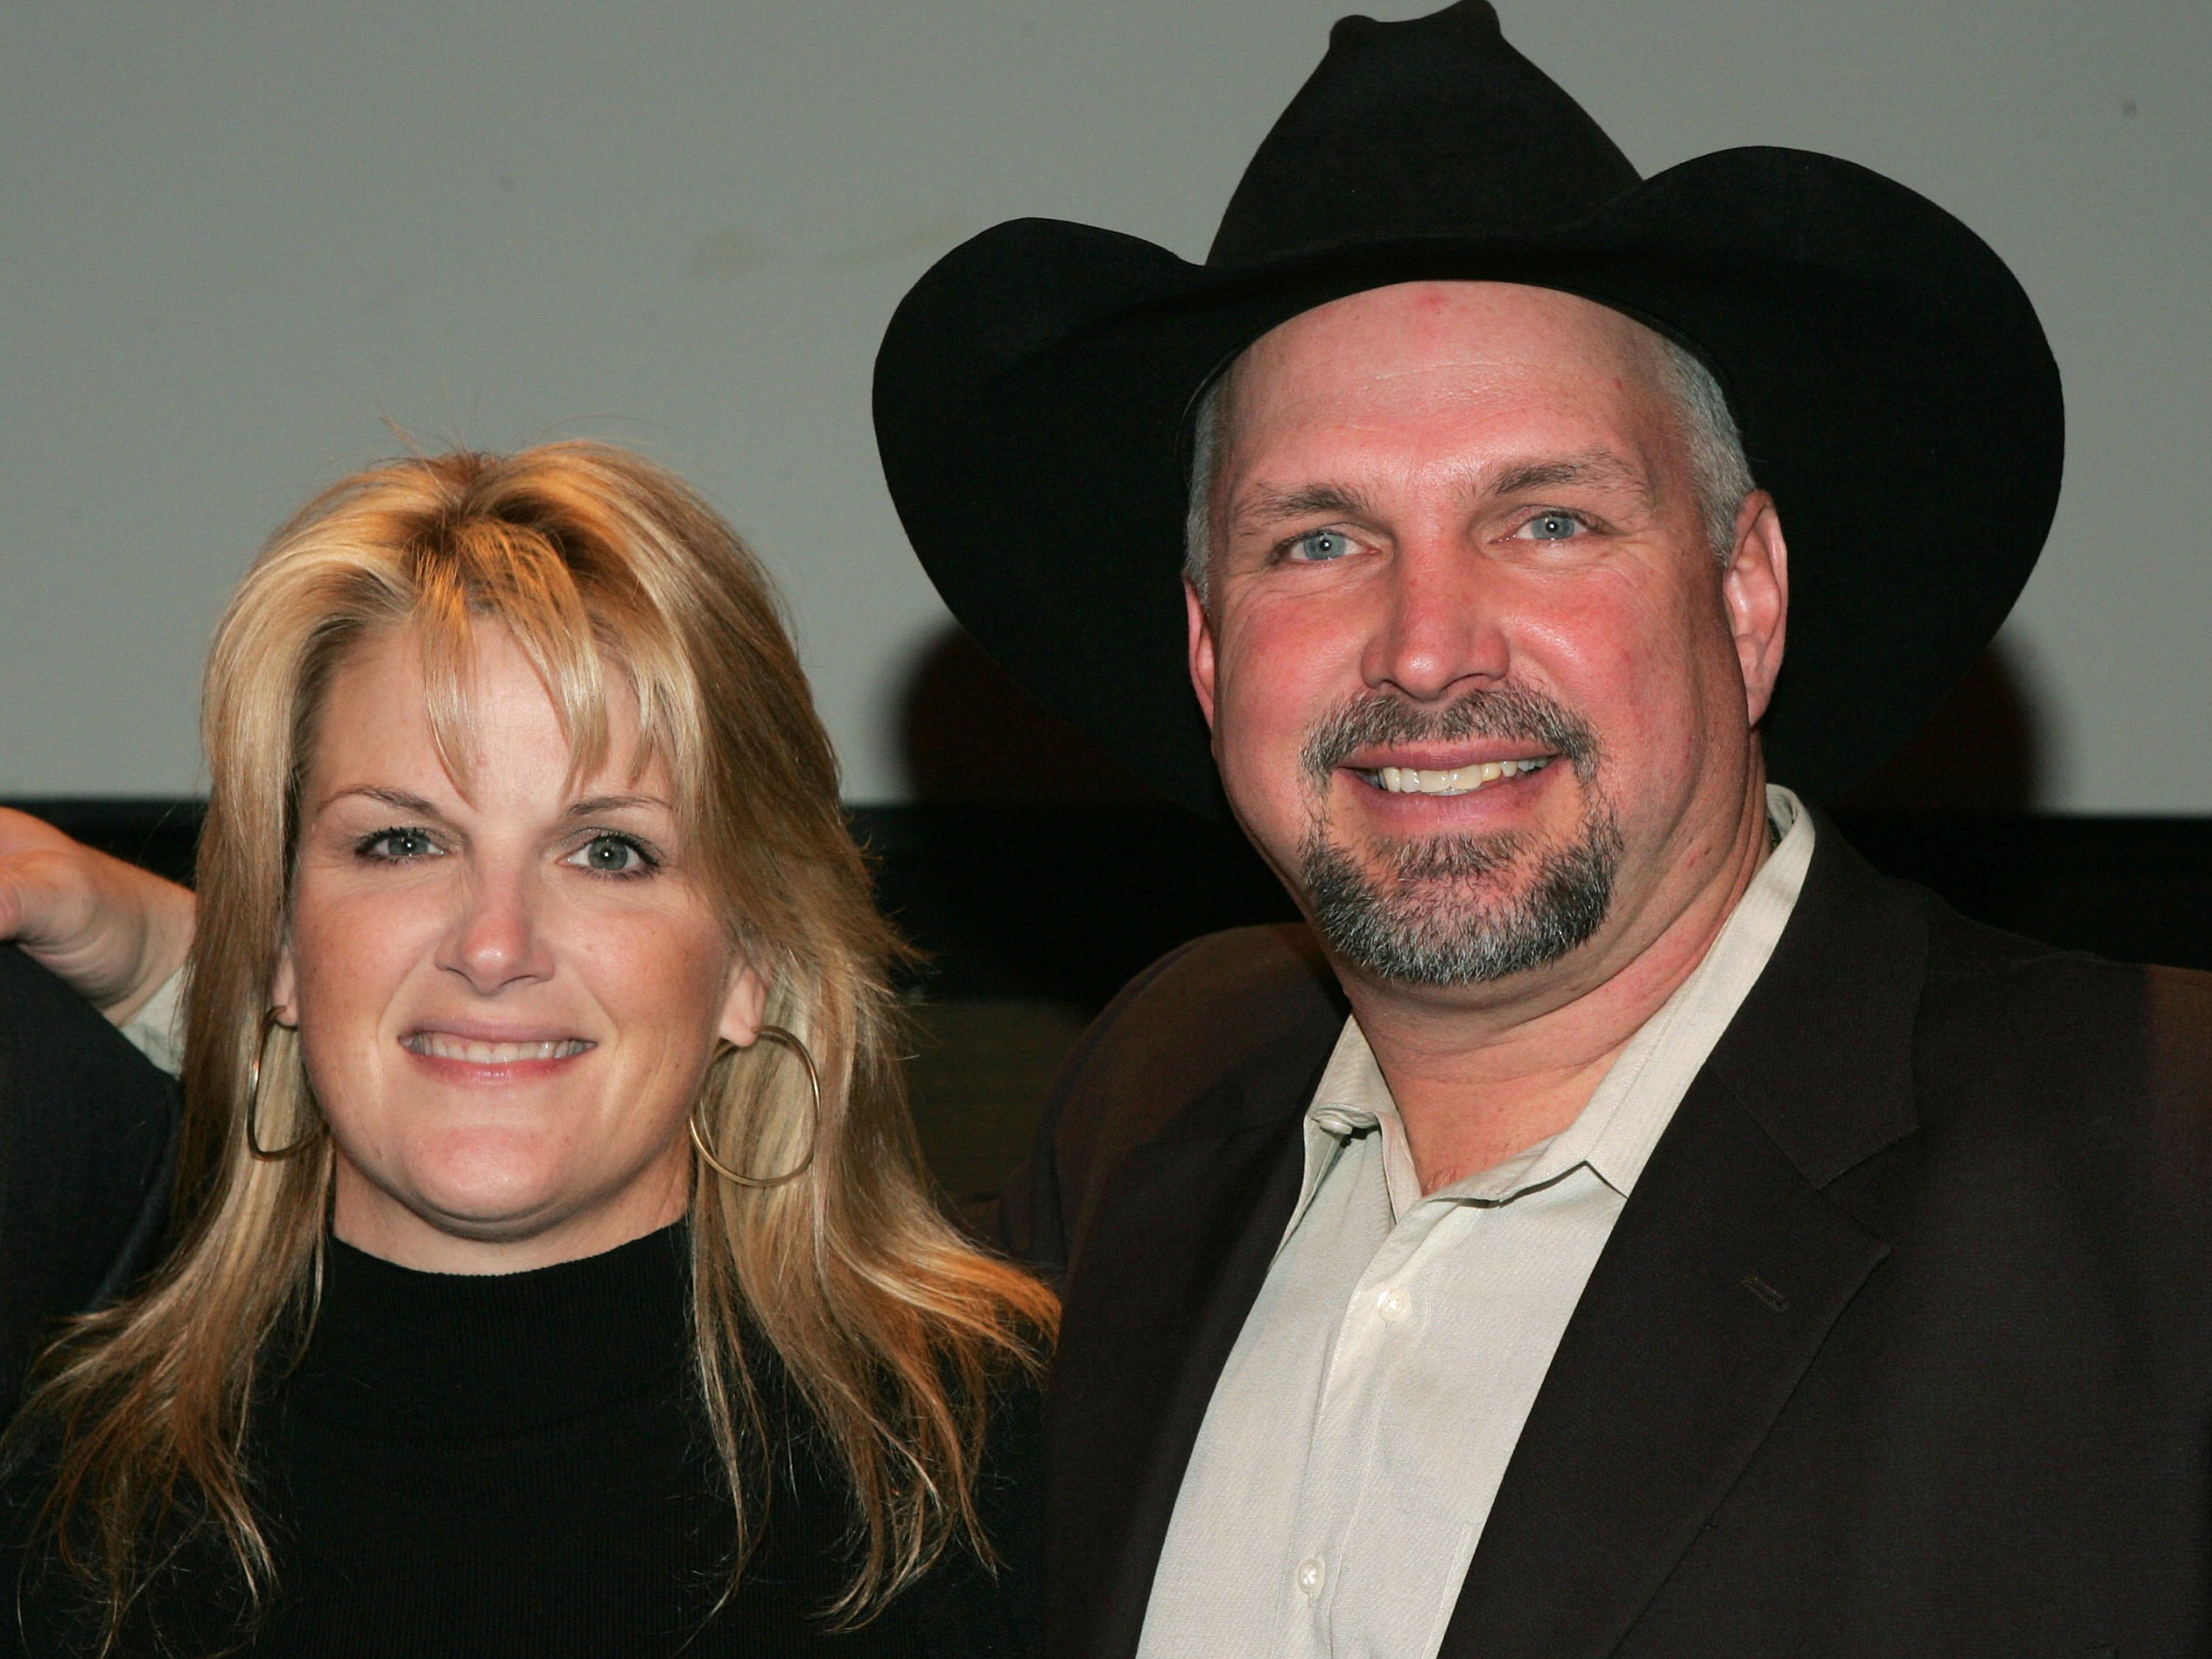 Trisha Yearwood and Garth Brooks attend the opening of The Zone, a therapeutic play and education enviroment at Mount Sinai Hospital February 7, 2006 in New York City.  (Photo by Peter Kramer/Getty Images)